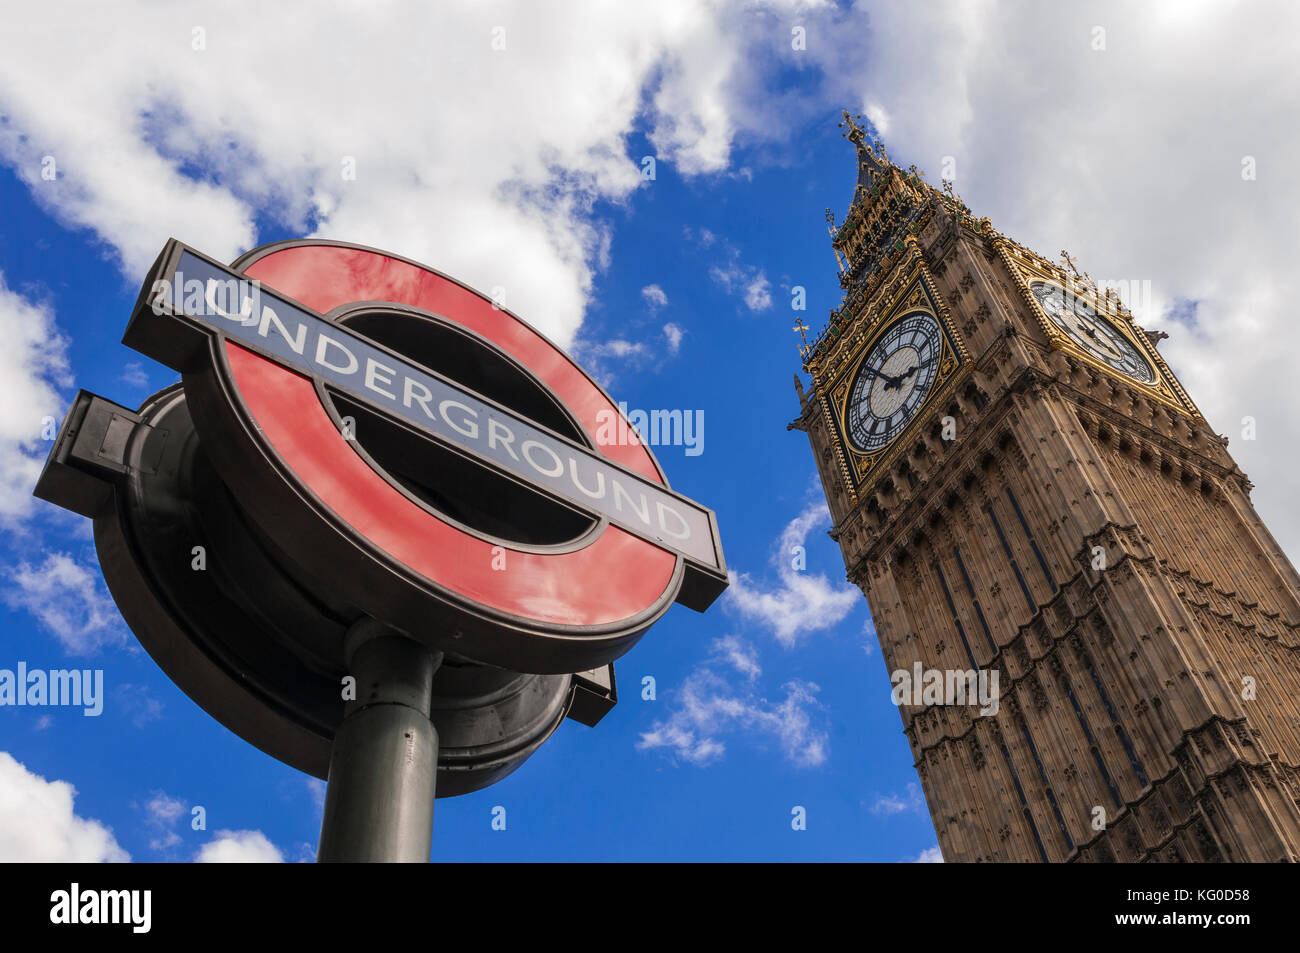 LONDON, UK - AUGUST, 11 2013; The sign of the London Underground and the Big Ben at the Westminster Tube station Stock Photo